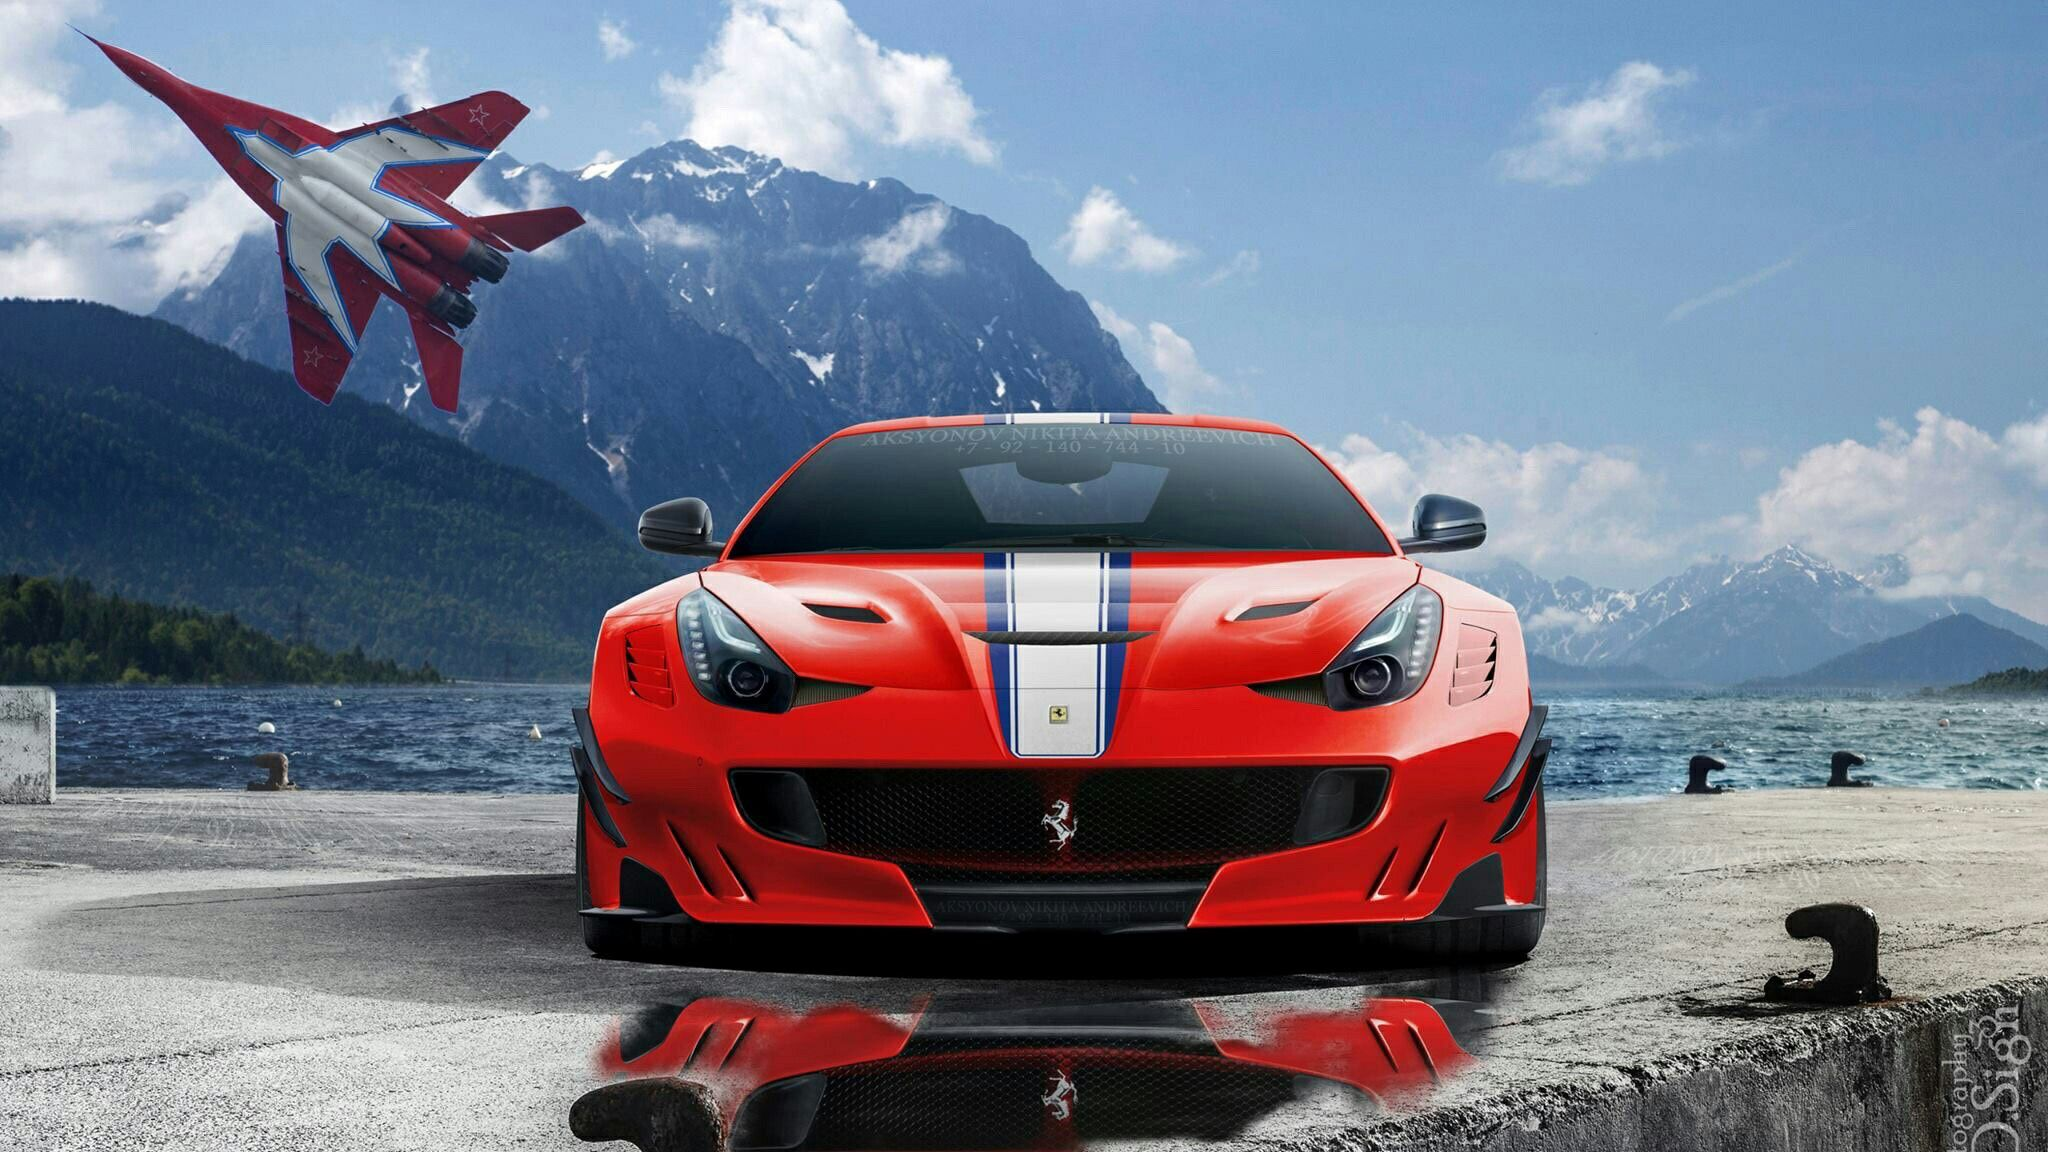 Pin By About Noor On Car 1 With Images Car Wallpapers Ferrari